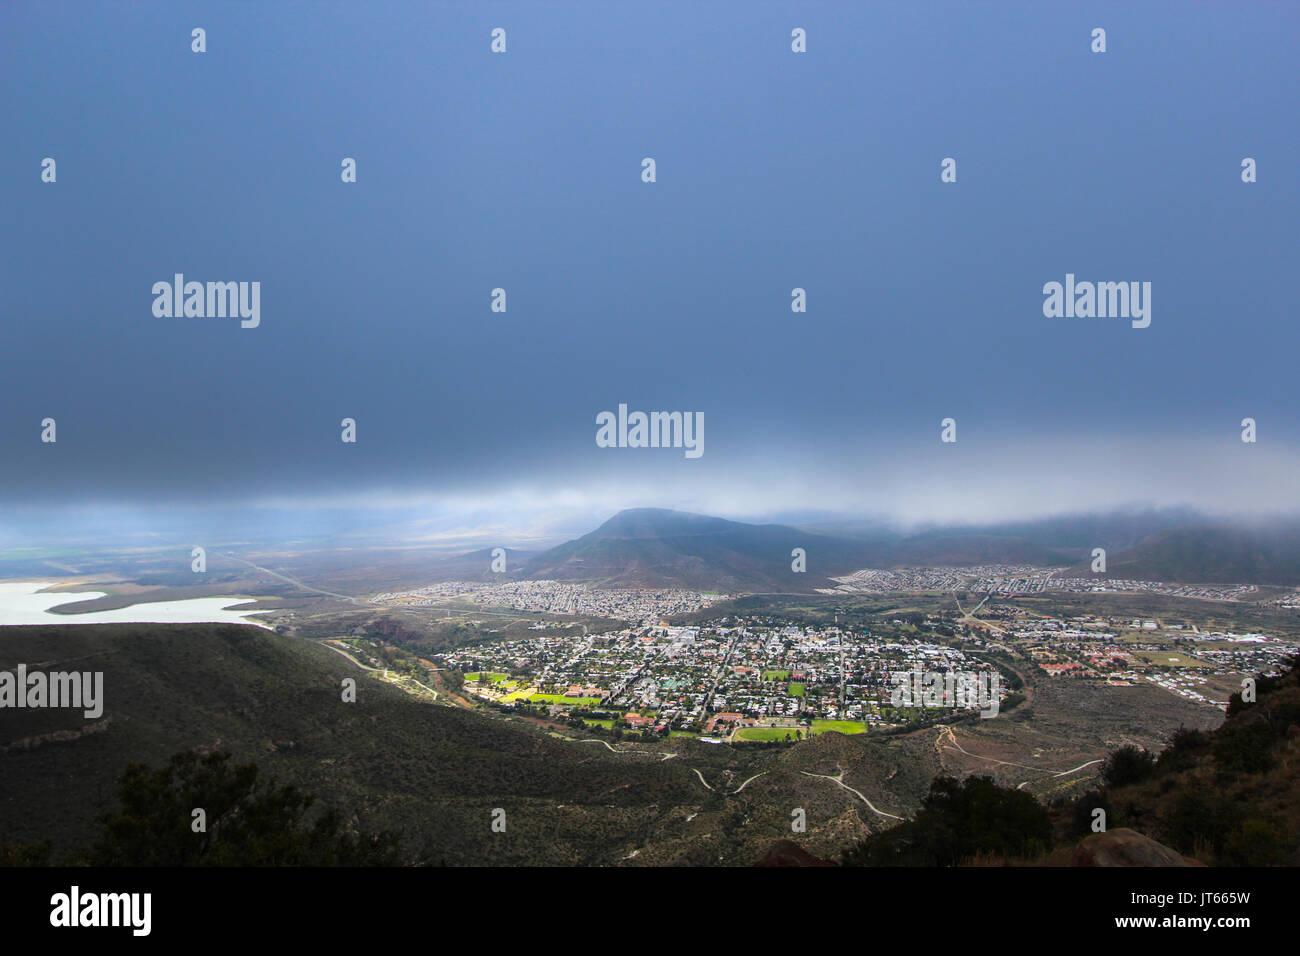 Valley of Desolation viewpoint, view of the city of Graaff Reinet during a storm, South Africa - Stock Image